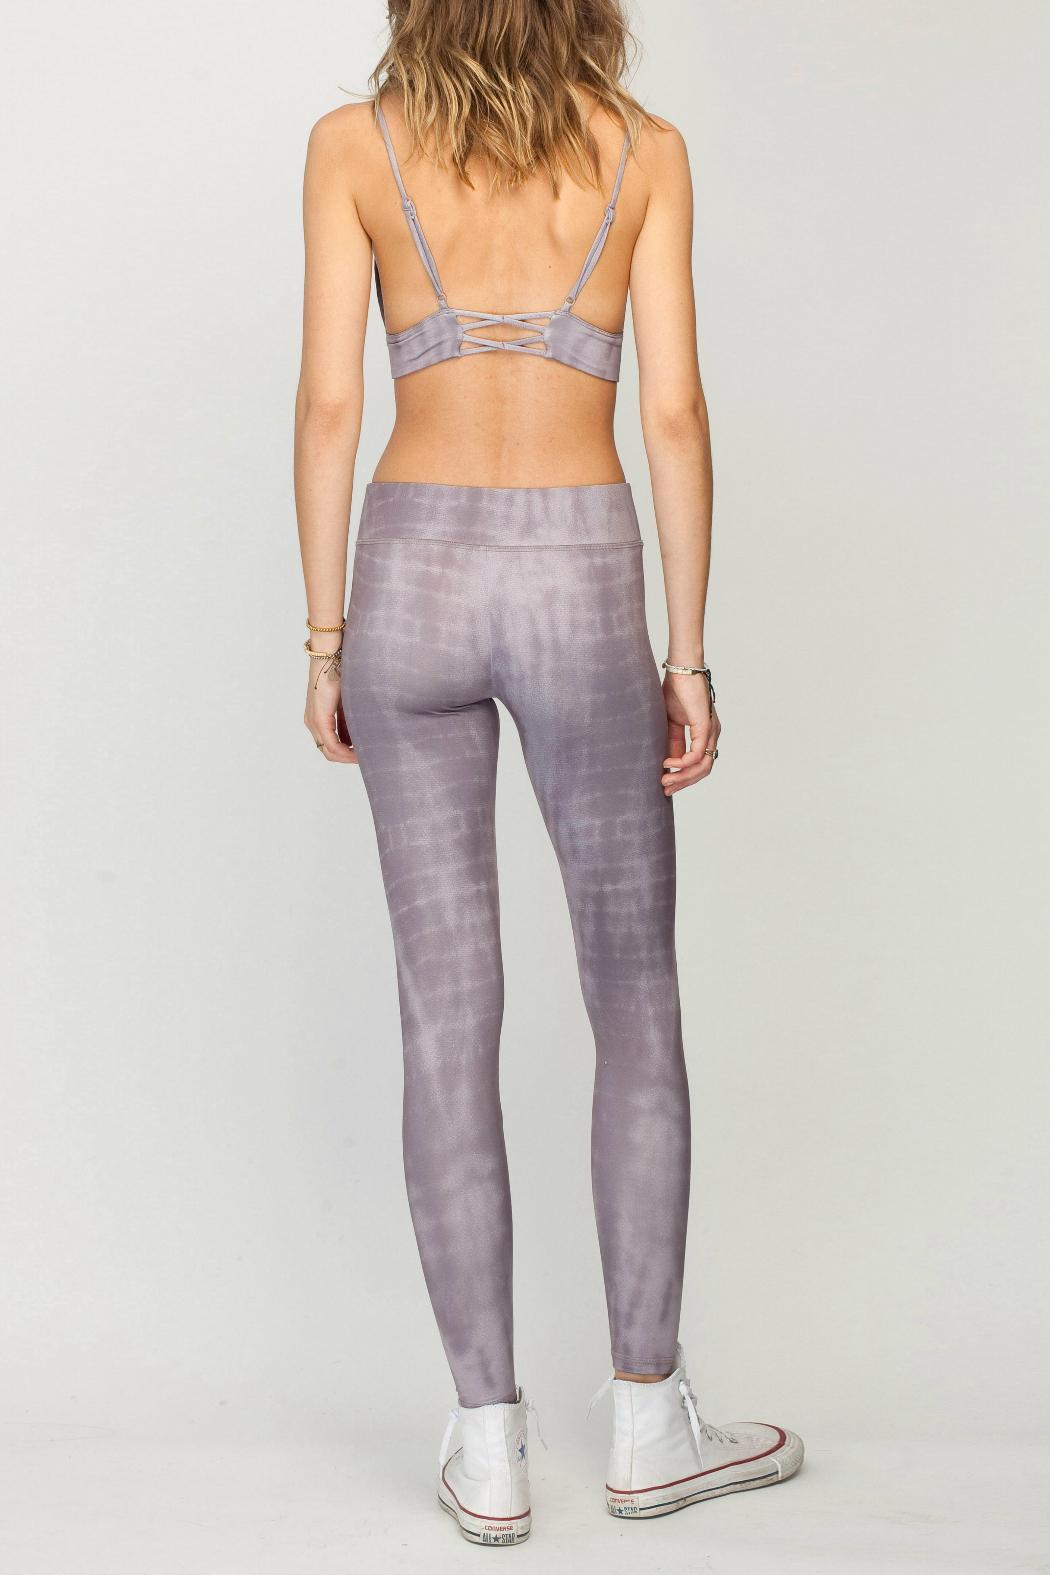 Gentle Fawn Printed Fall Leggings - Back Cropped Image